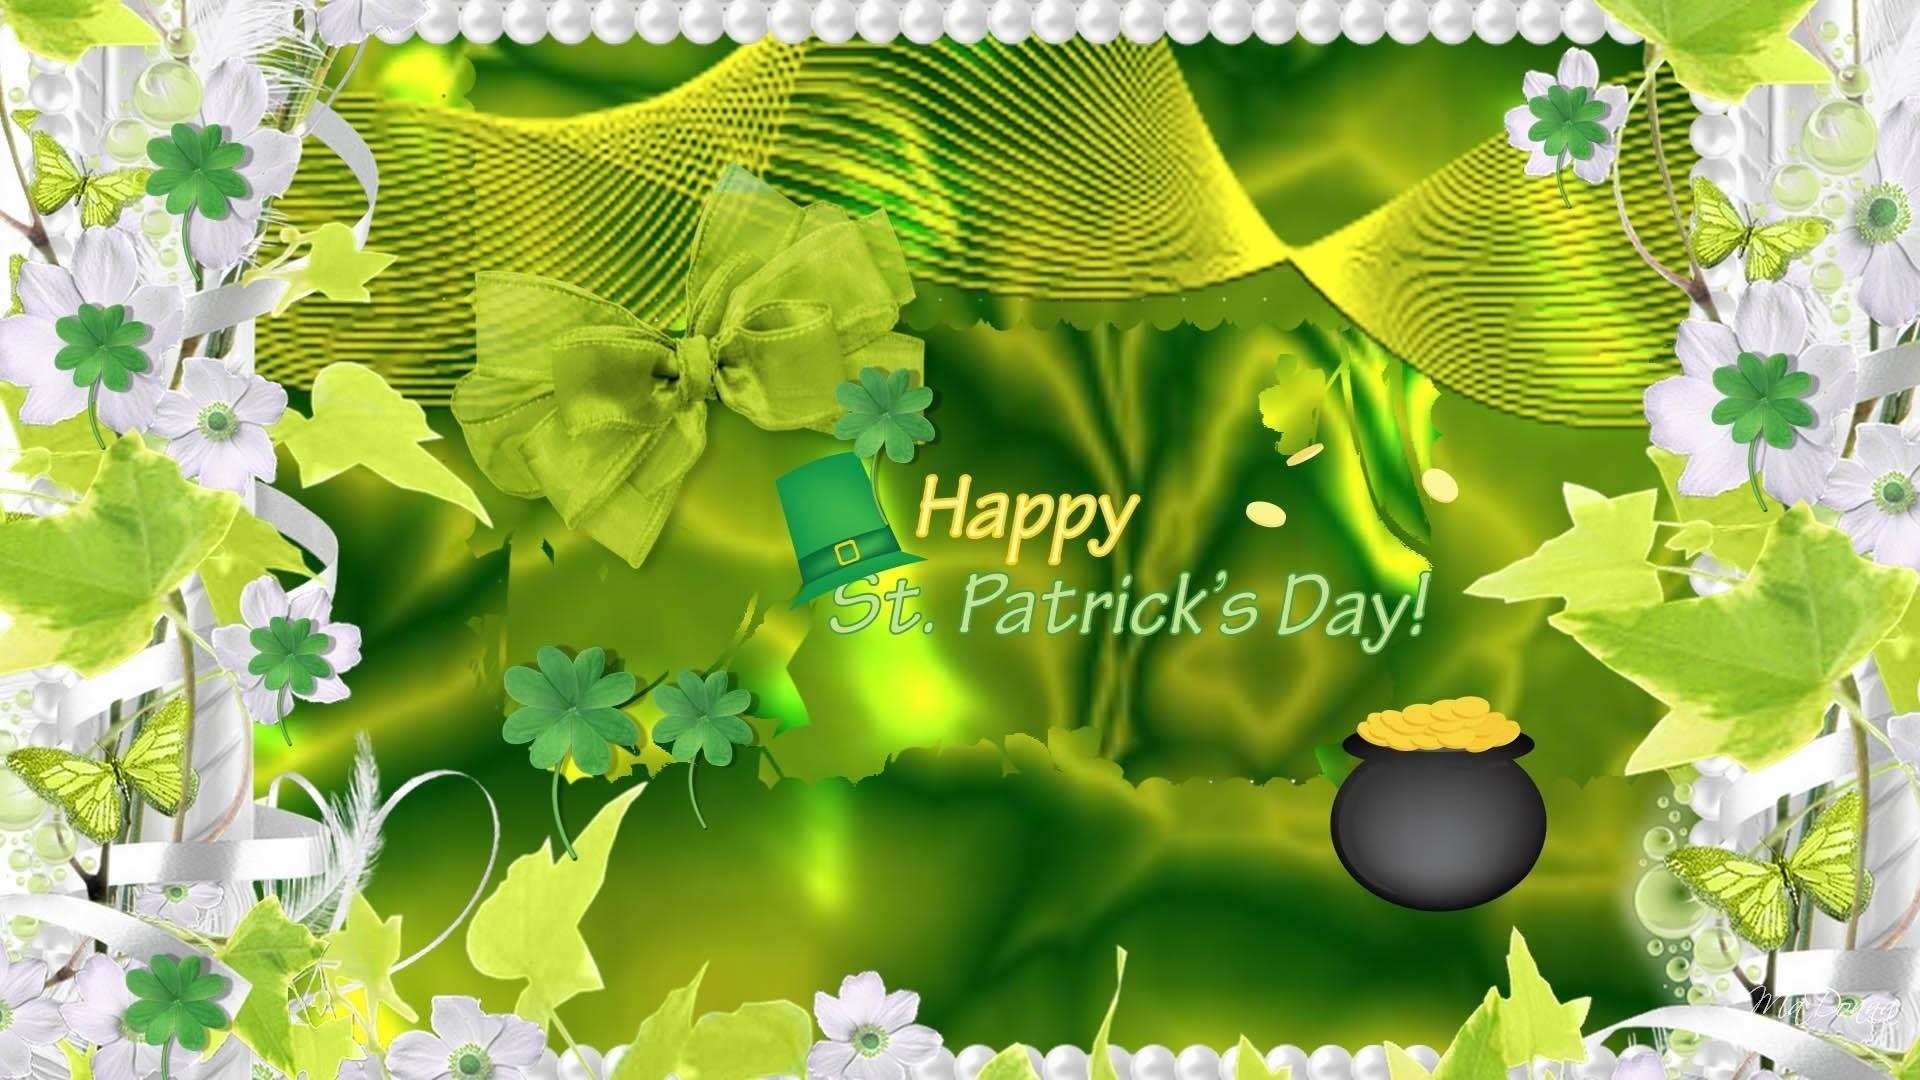 1920x1080 Images St Patricks Day Saint Fun Wallpapers Windows Download Free Cool Background Mac 10 Tablet 1920A 1080 Wallpaper HD